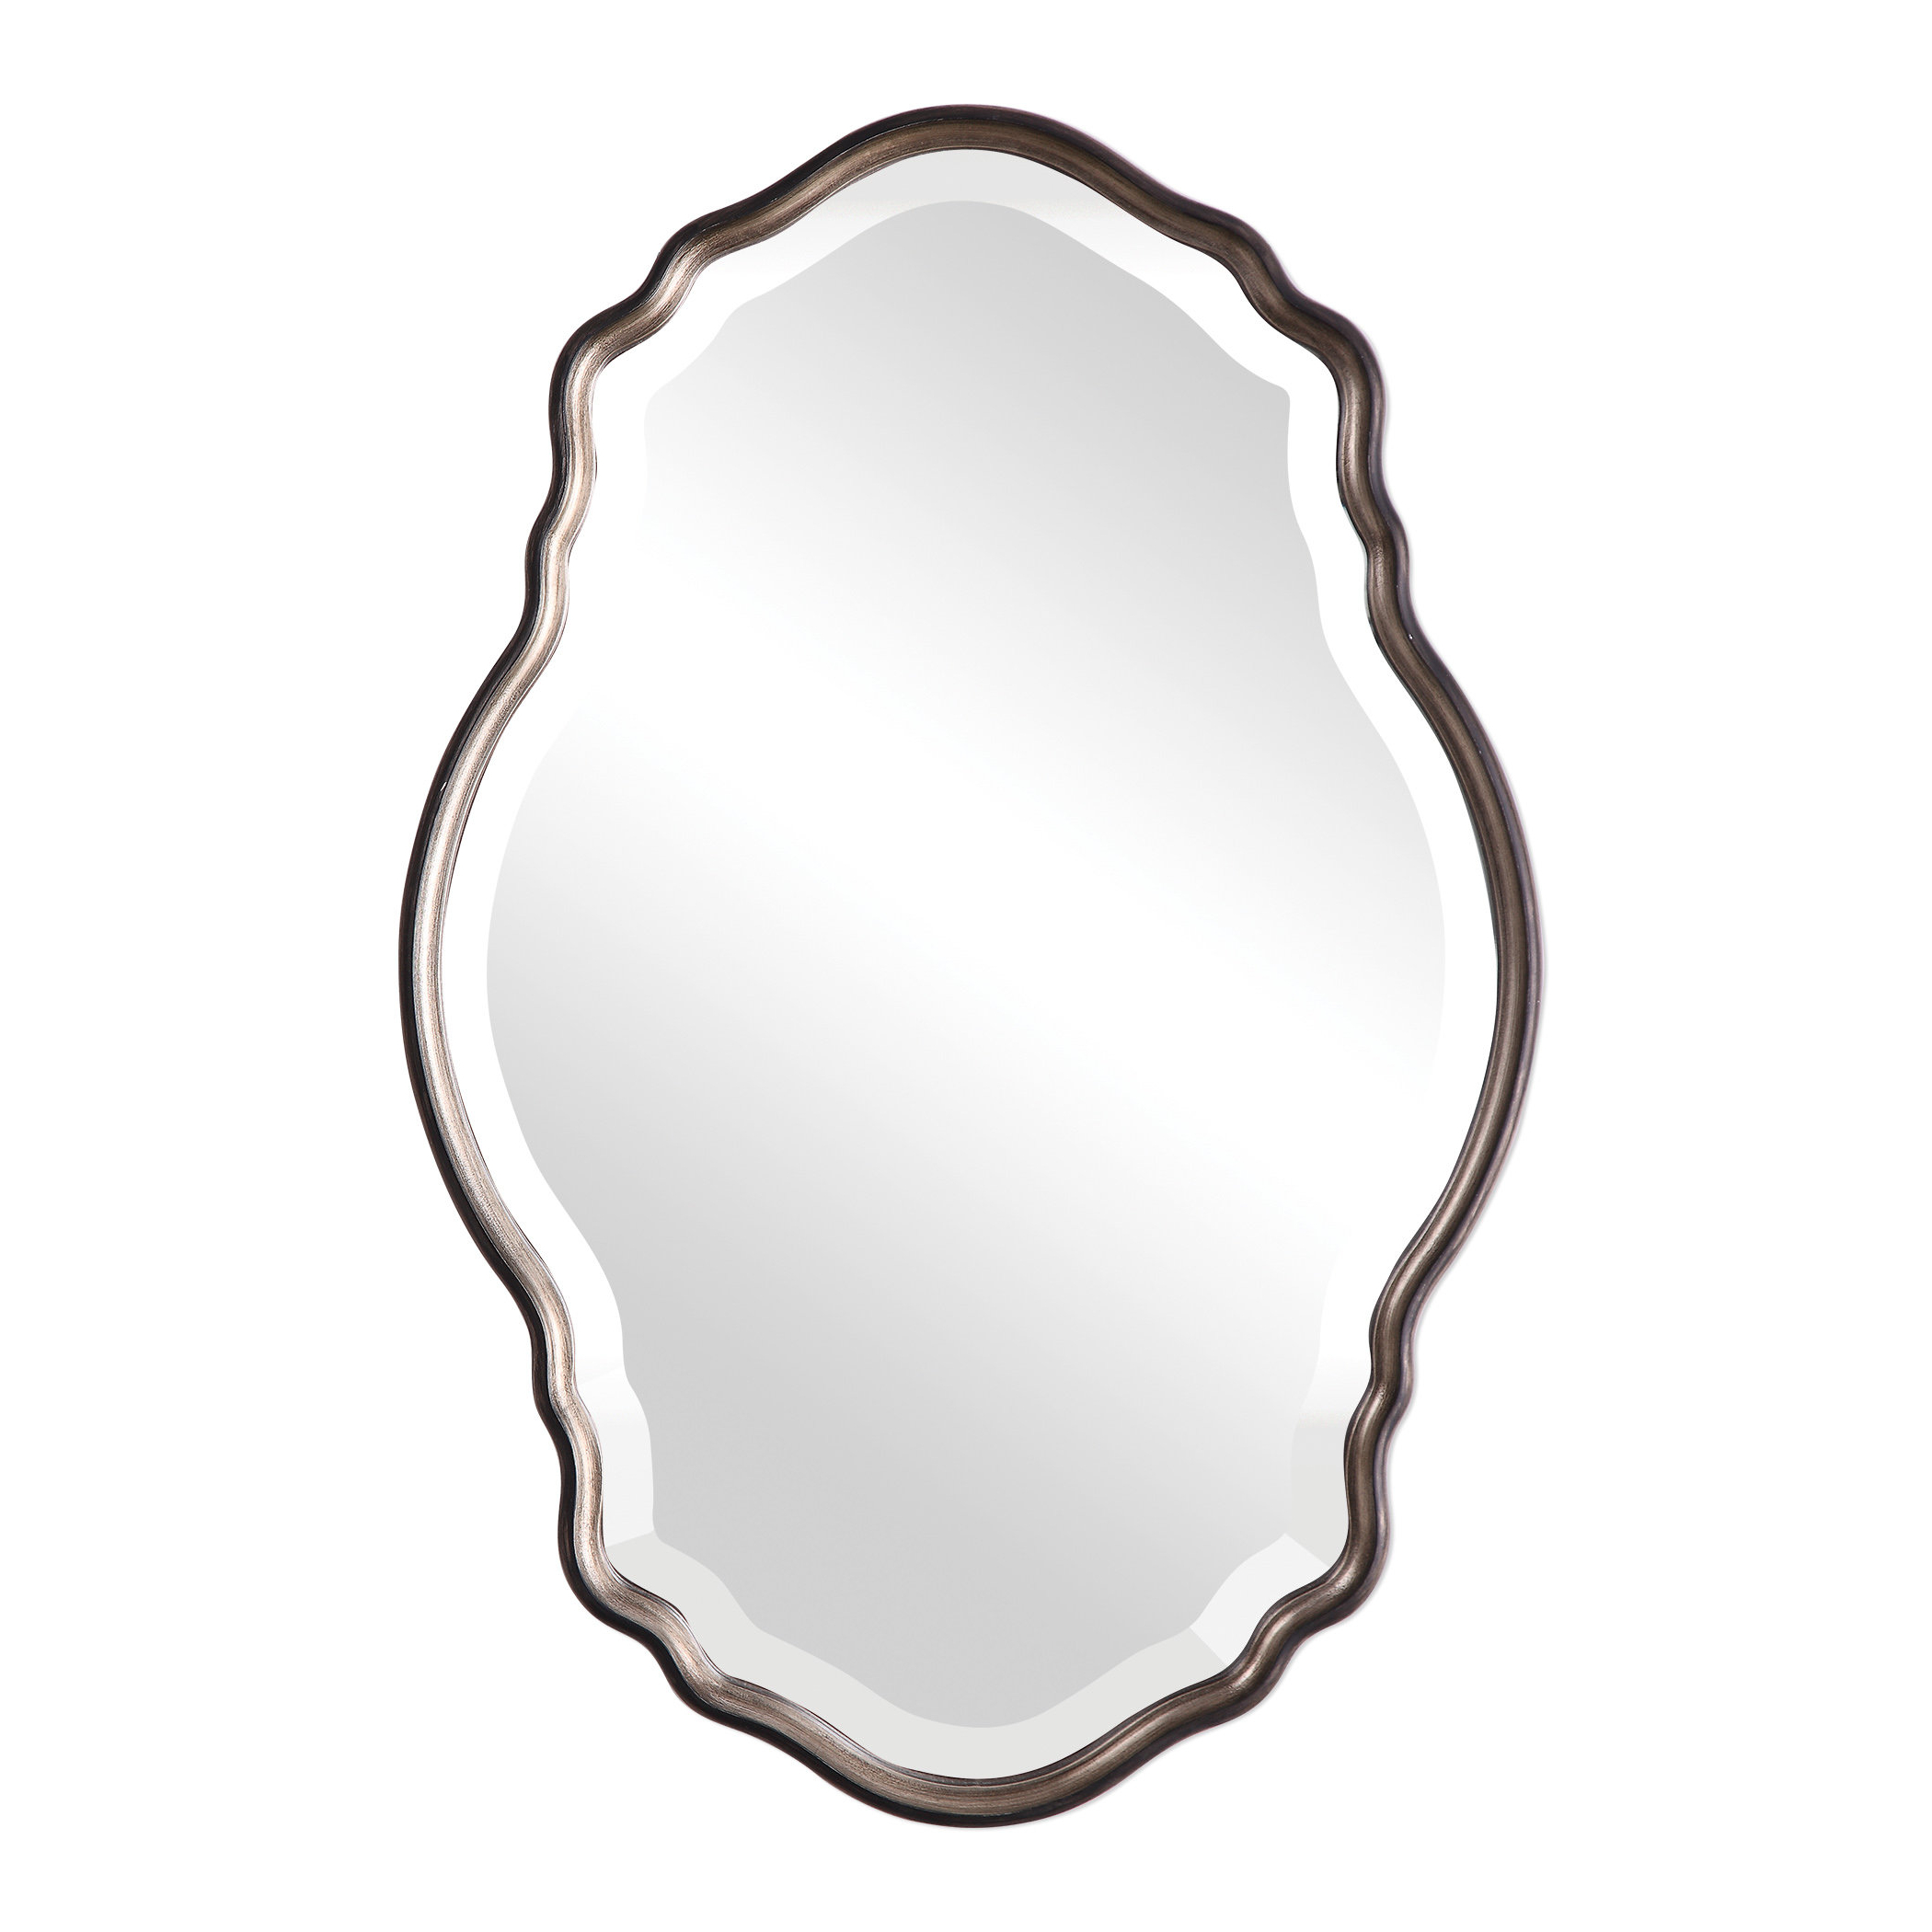 Reign Frameless Oval Scalloped Beveled Wall Mirrors Throughout Favorite Christner Modern & Contemporary Beveled Wall Mirror (View 19 of 20)